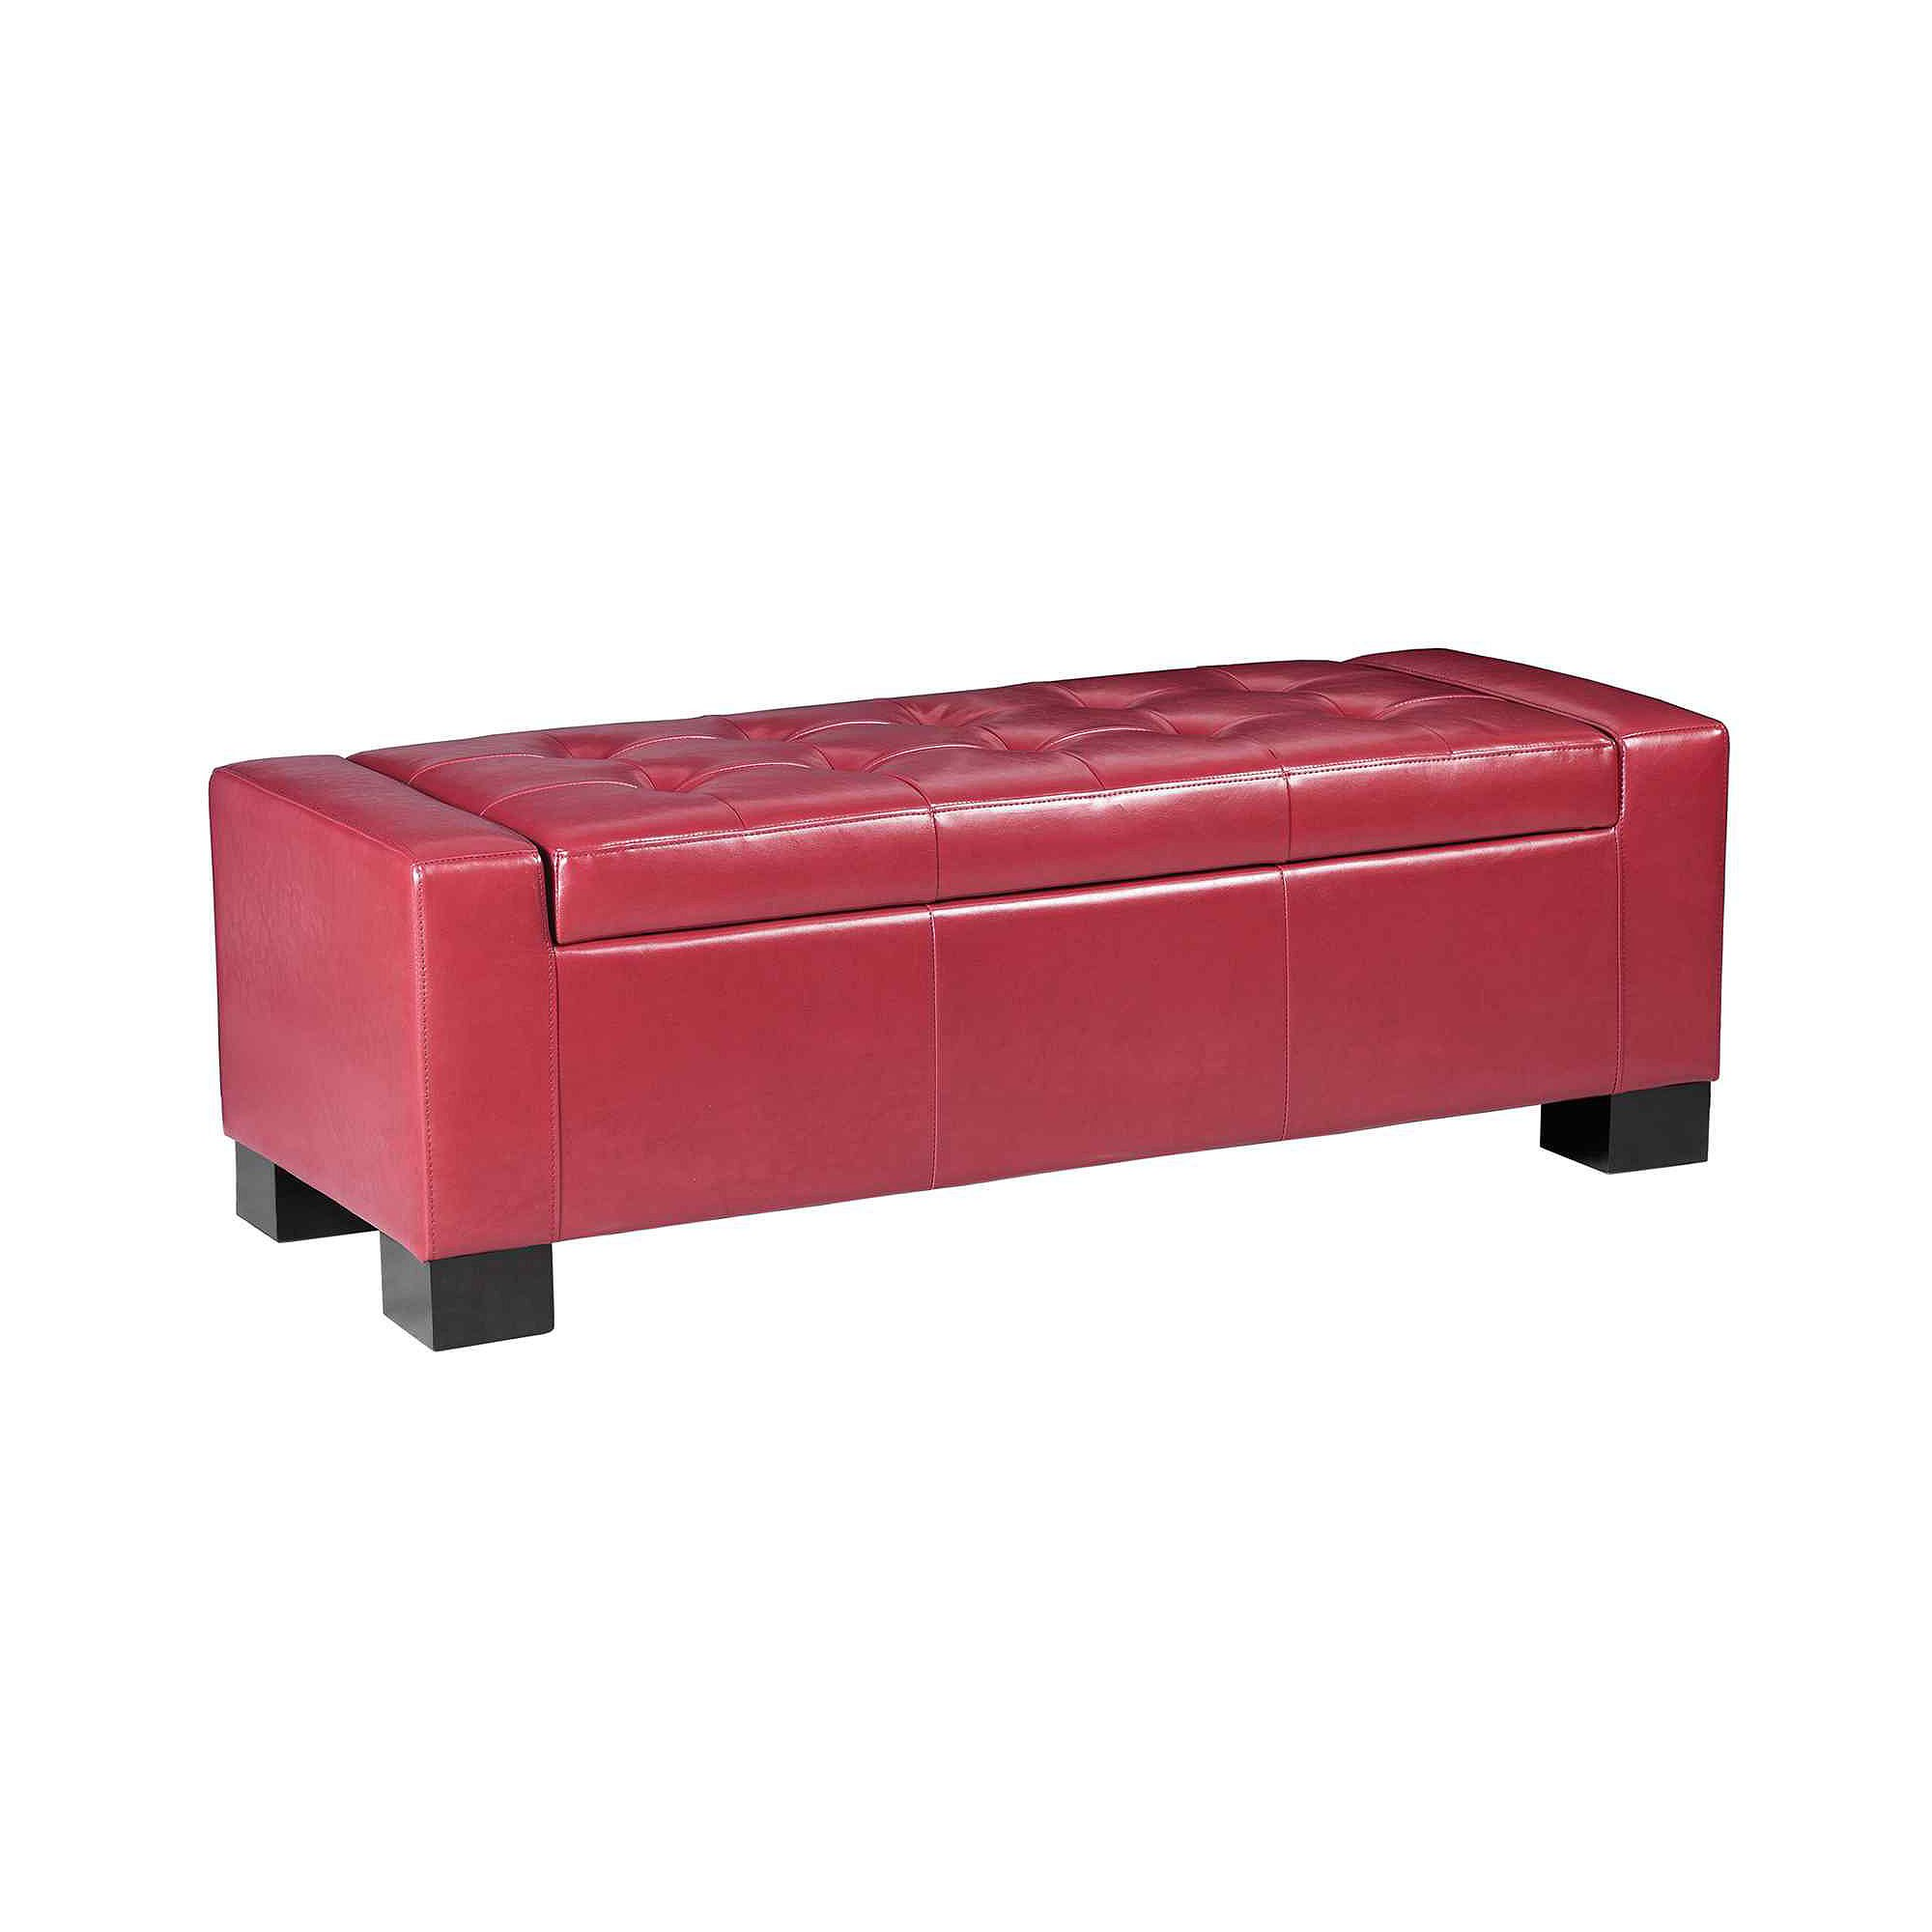 Madison Park FPF18-0139 Mirage Bench